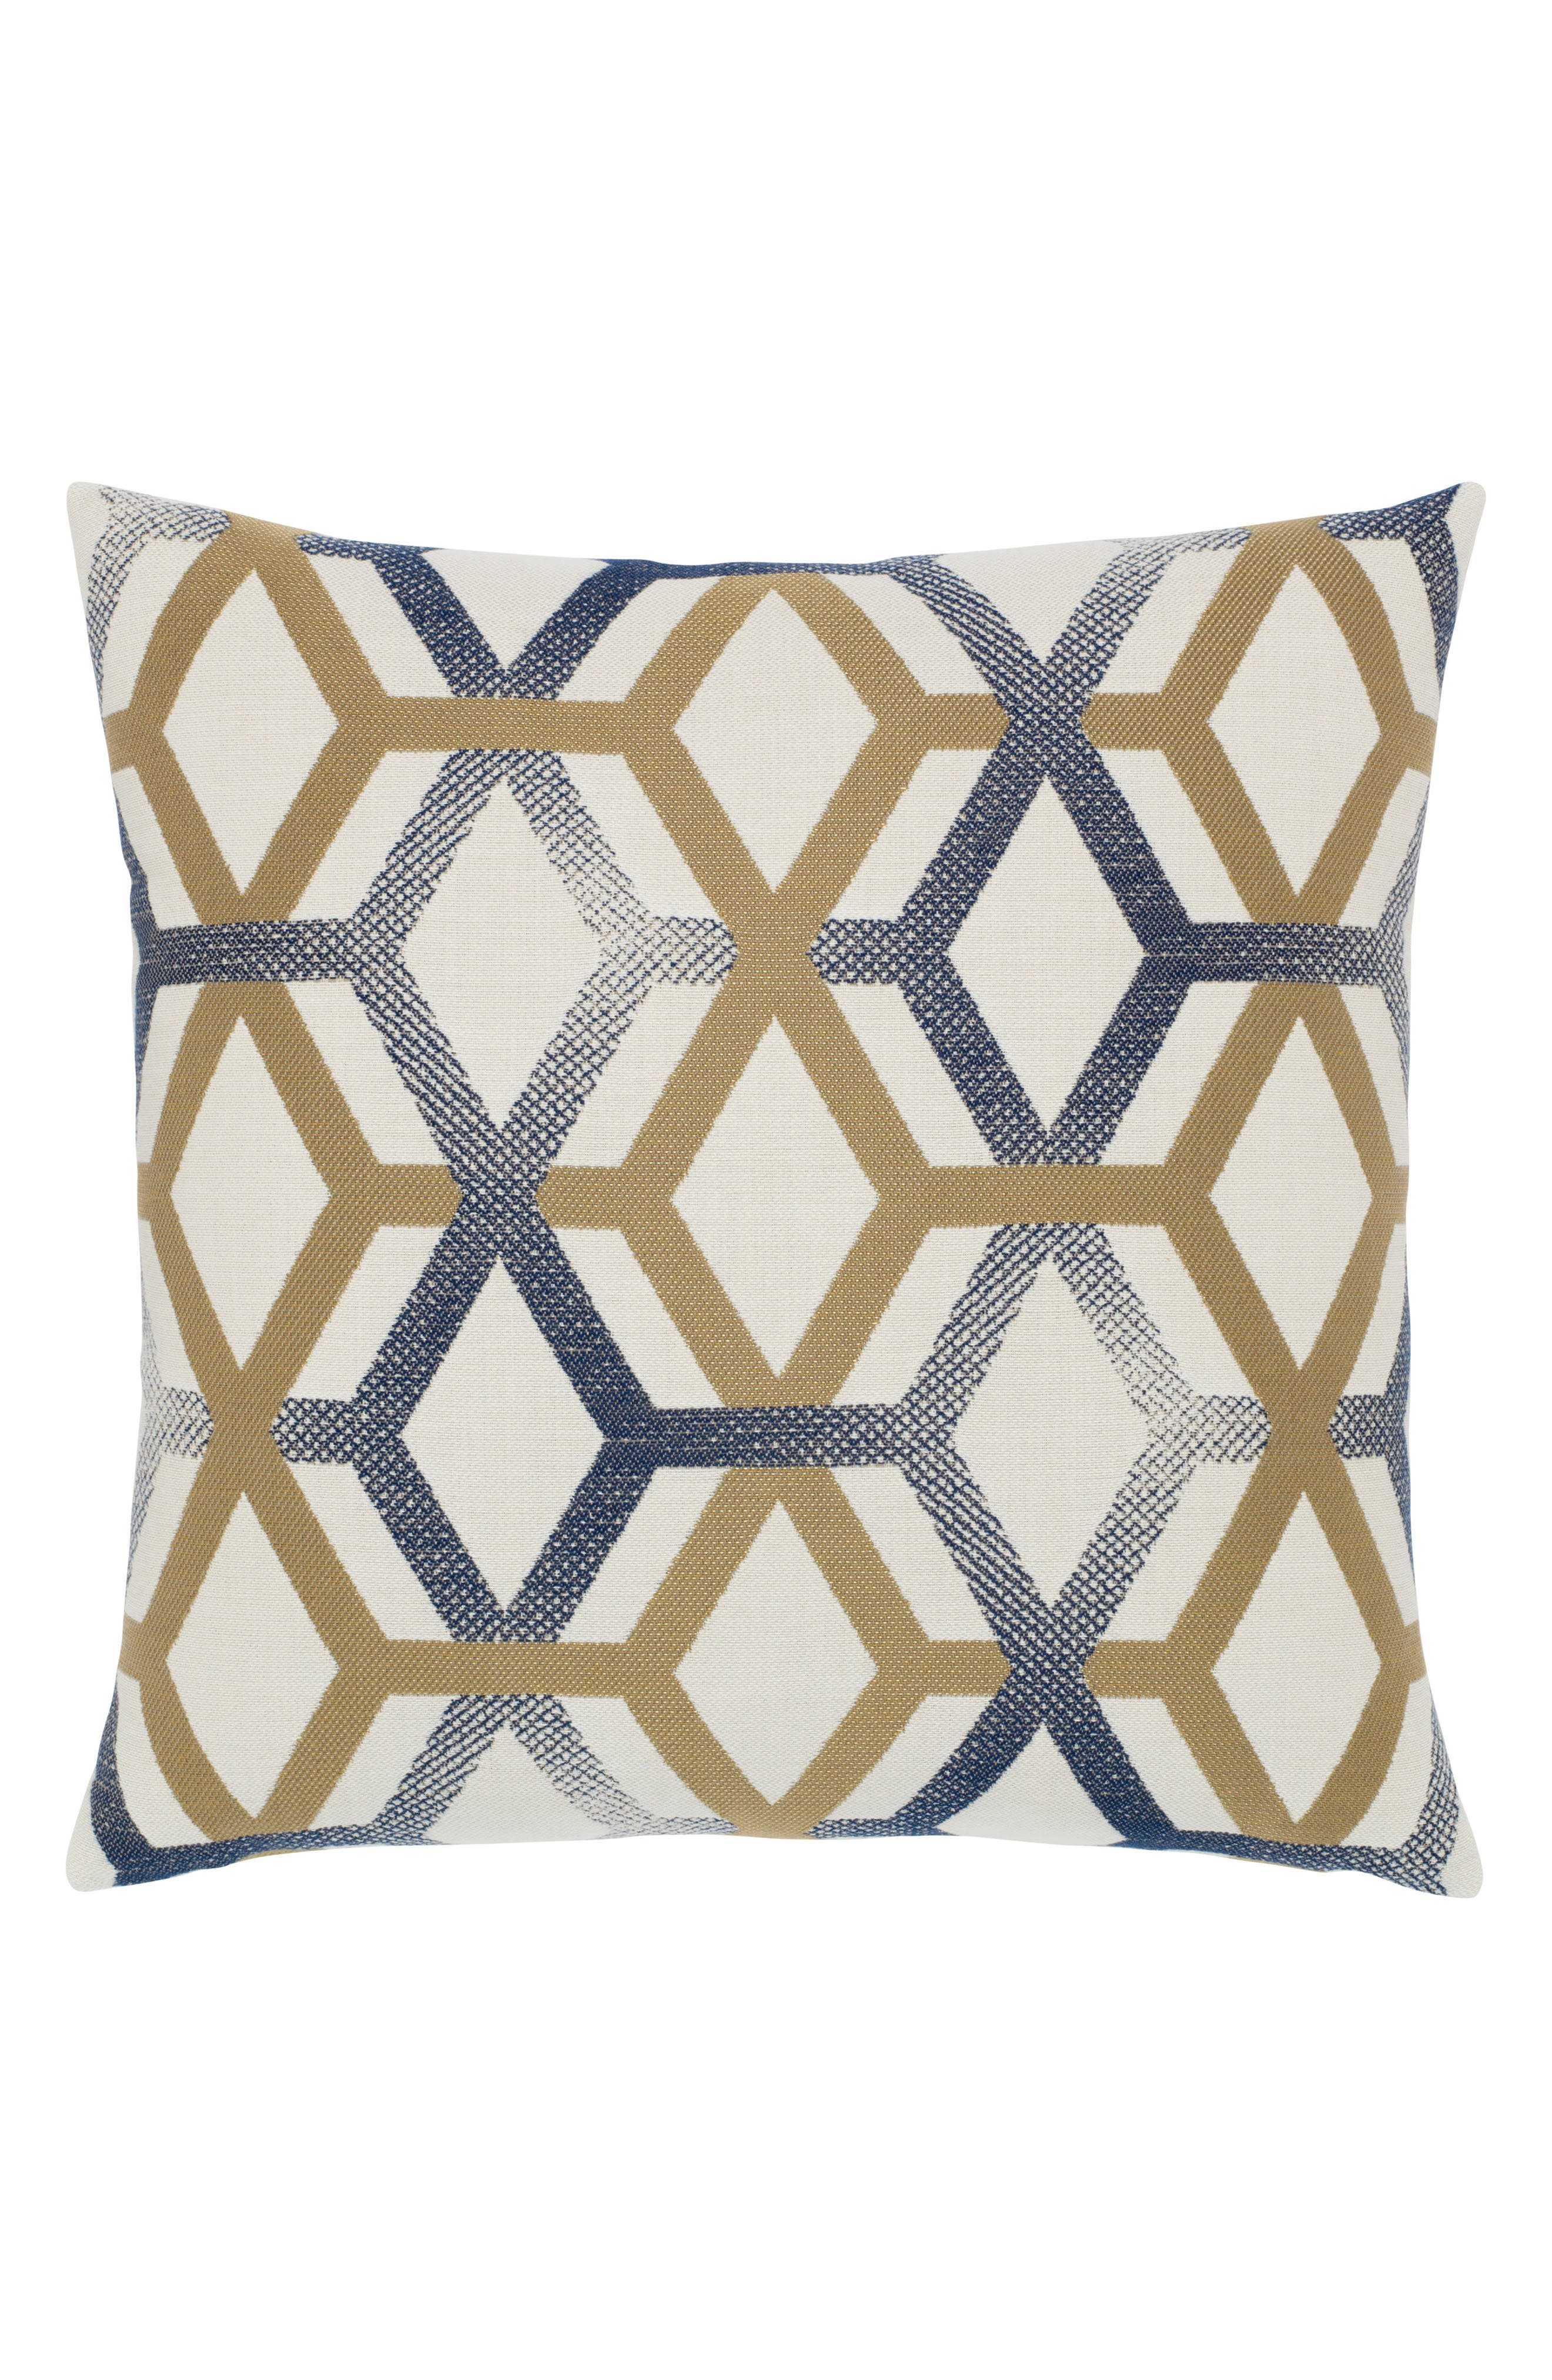 Luminous Lines Indoor/Outdoor Accent Pillow,                         Main,                         color, White/ Blue